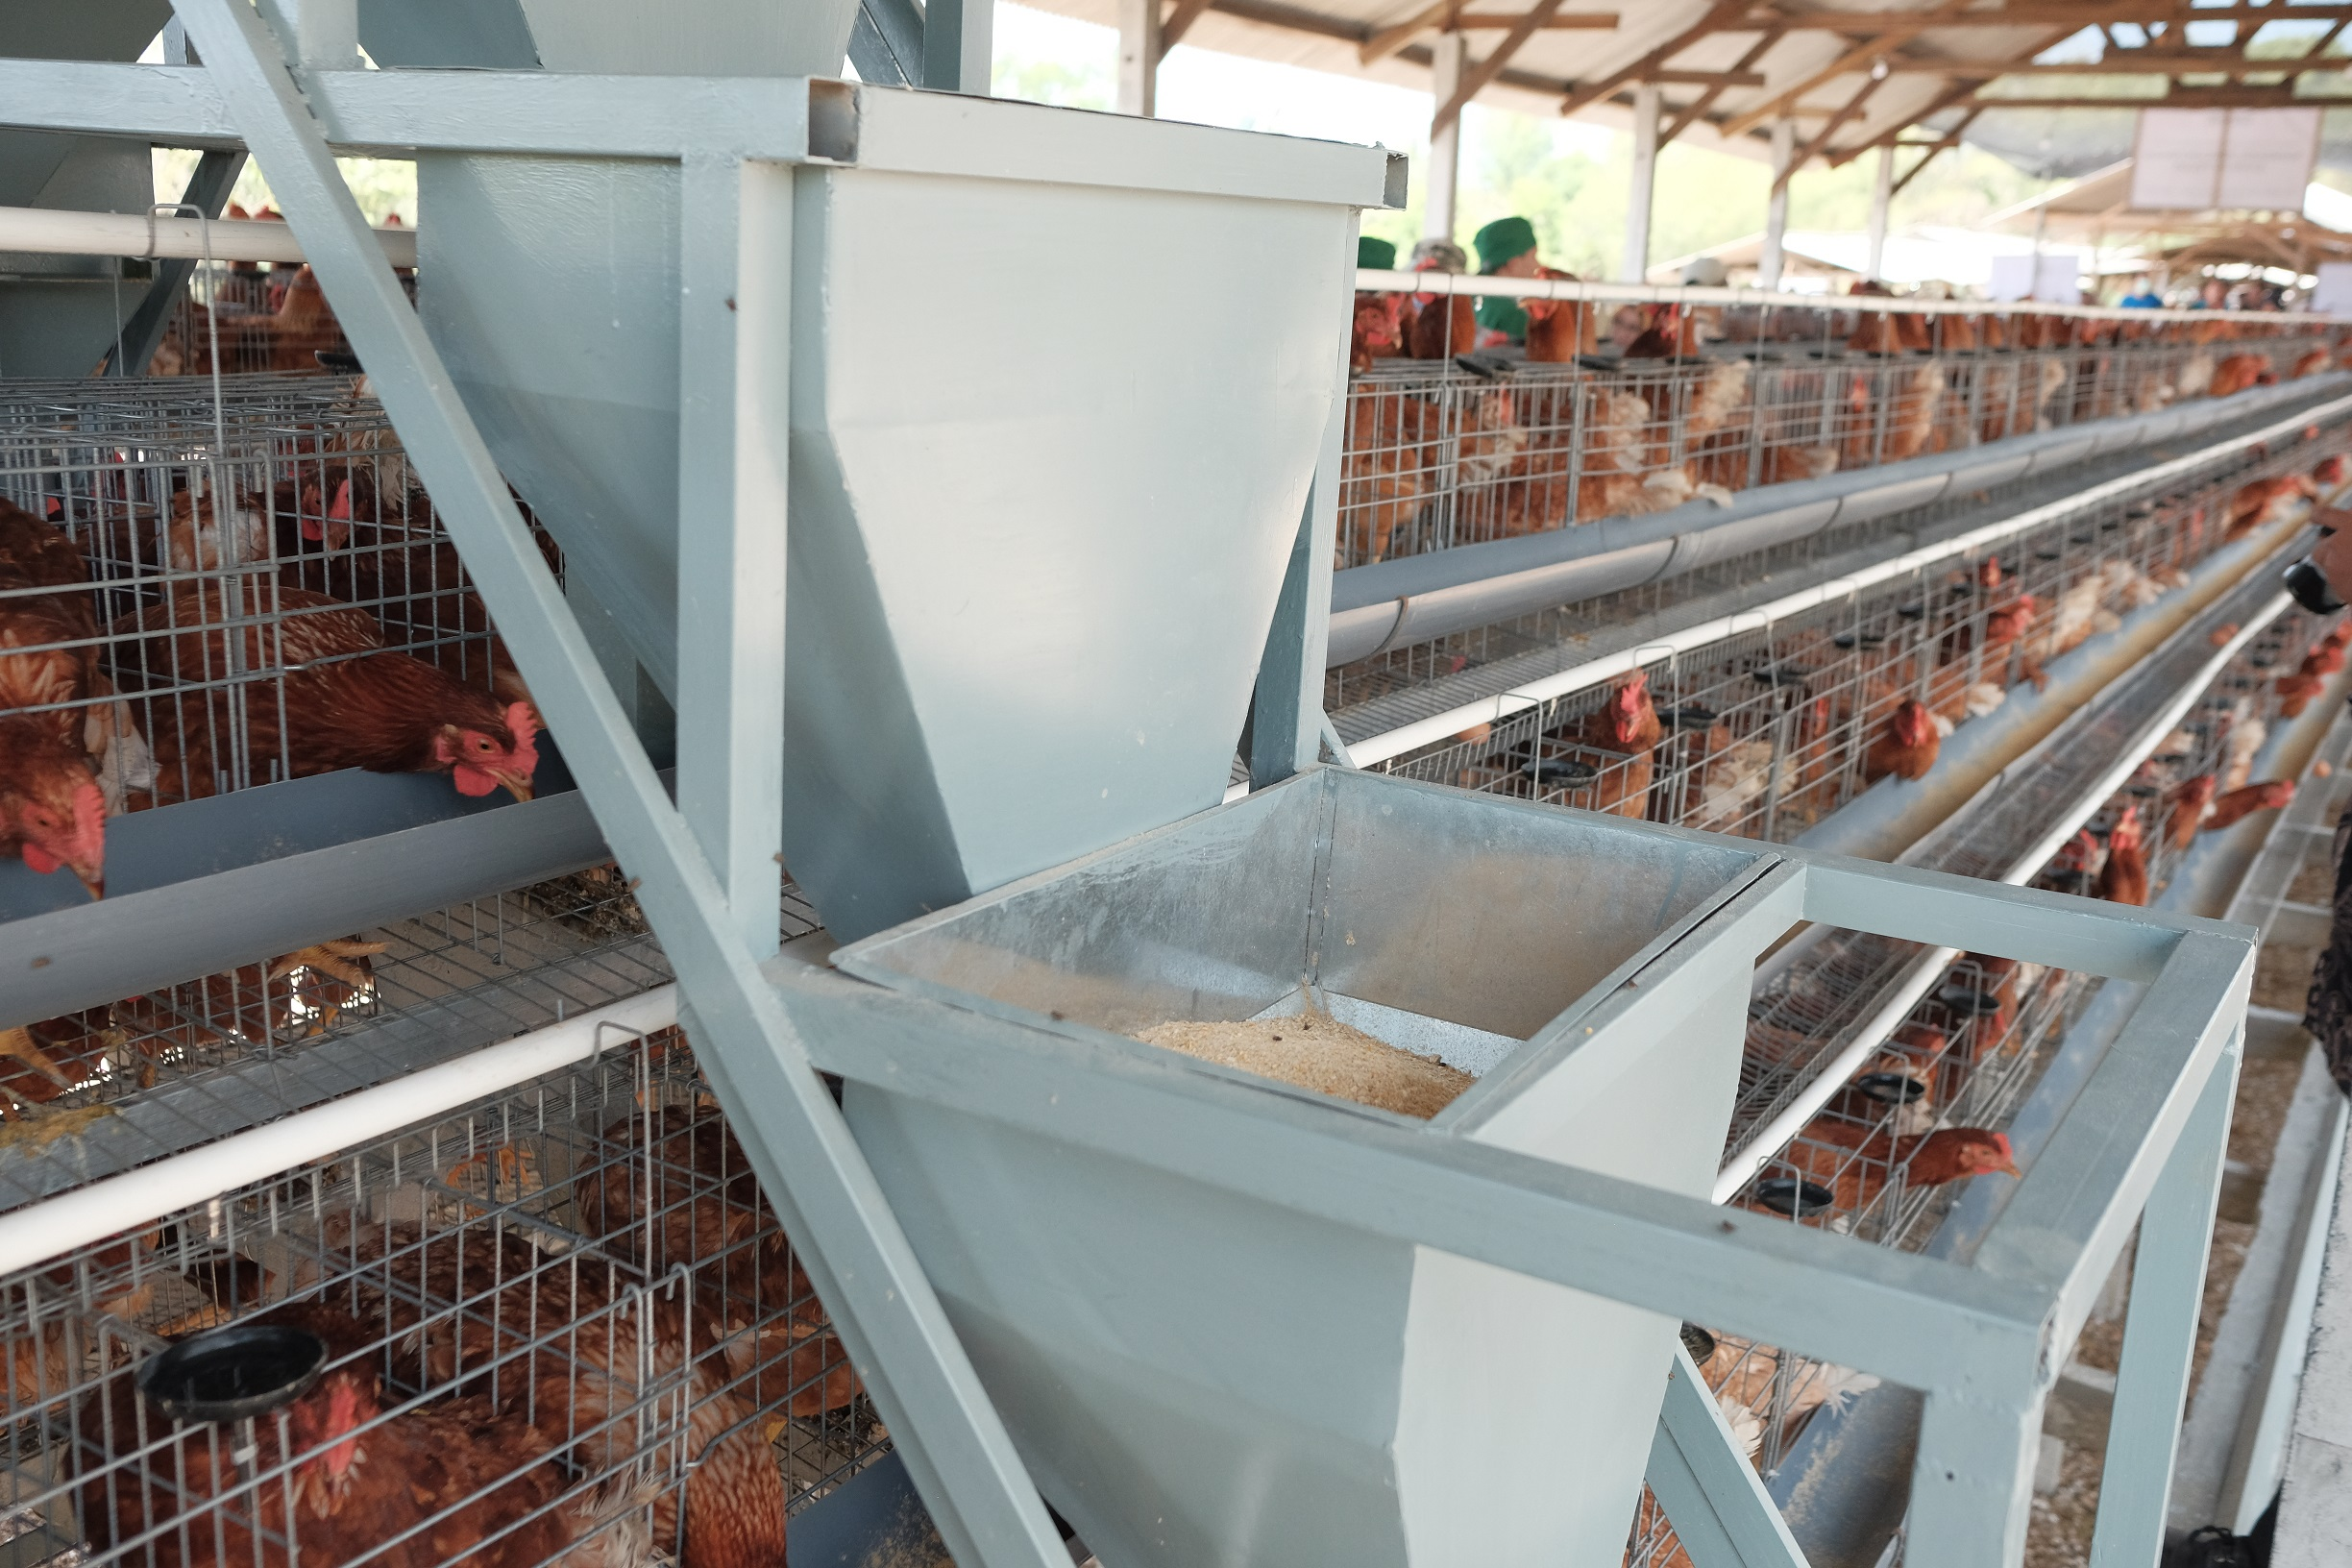 A new feeding tool used in the new climate smart chicken shed. Photo: Nyoman Prayoga/USAID APIK